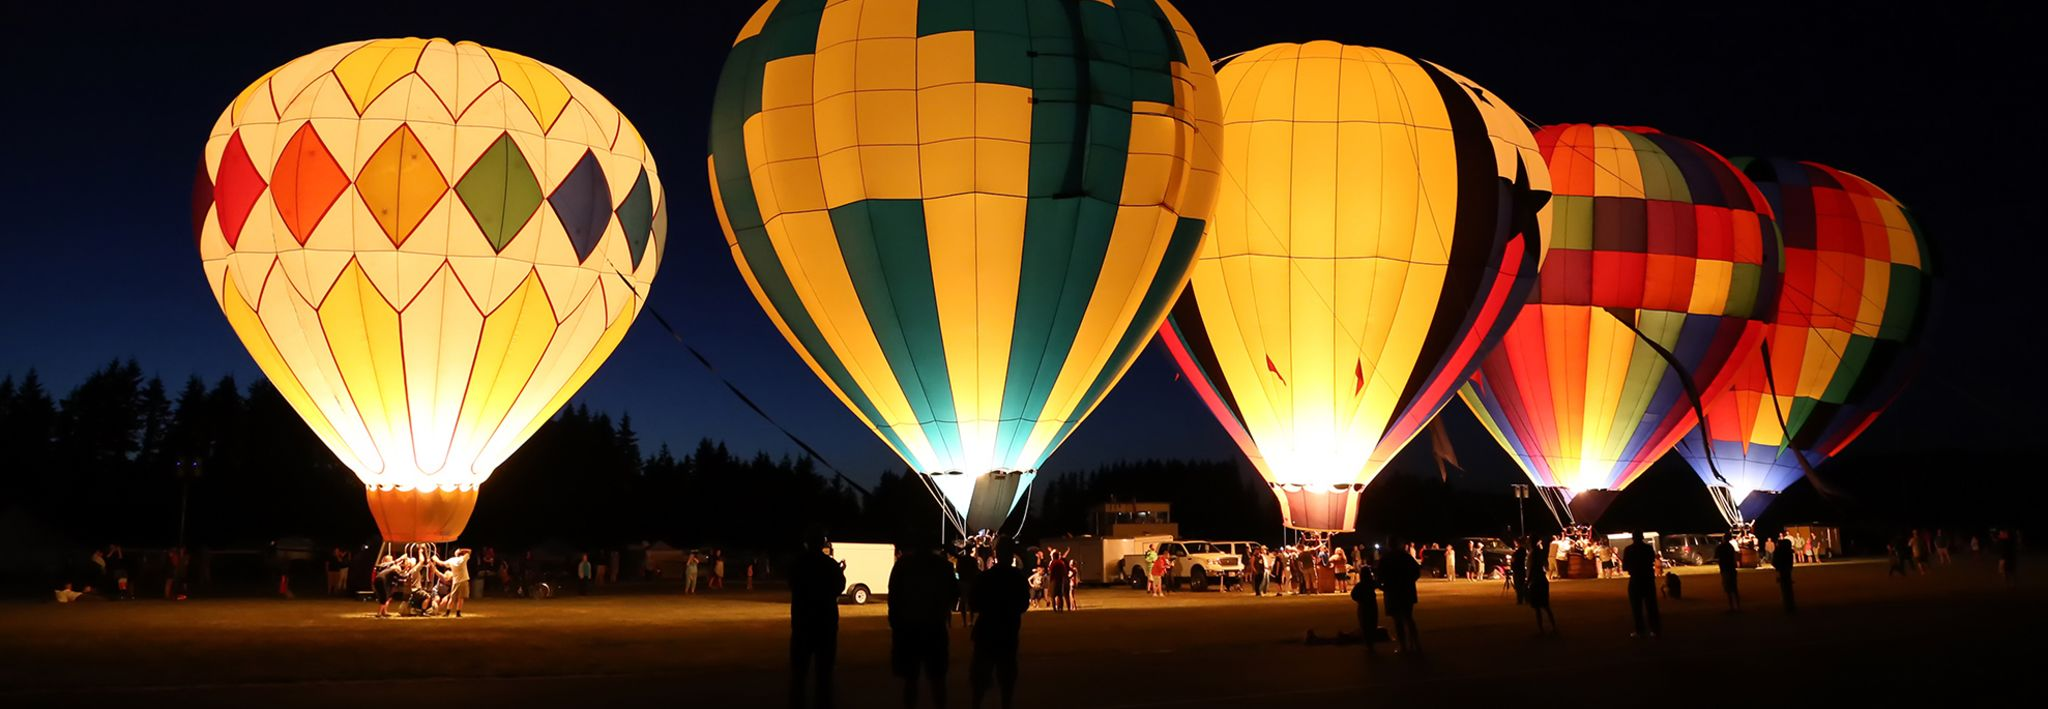 Hot air balloons are lit up on the CCU campus.